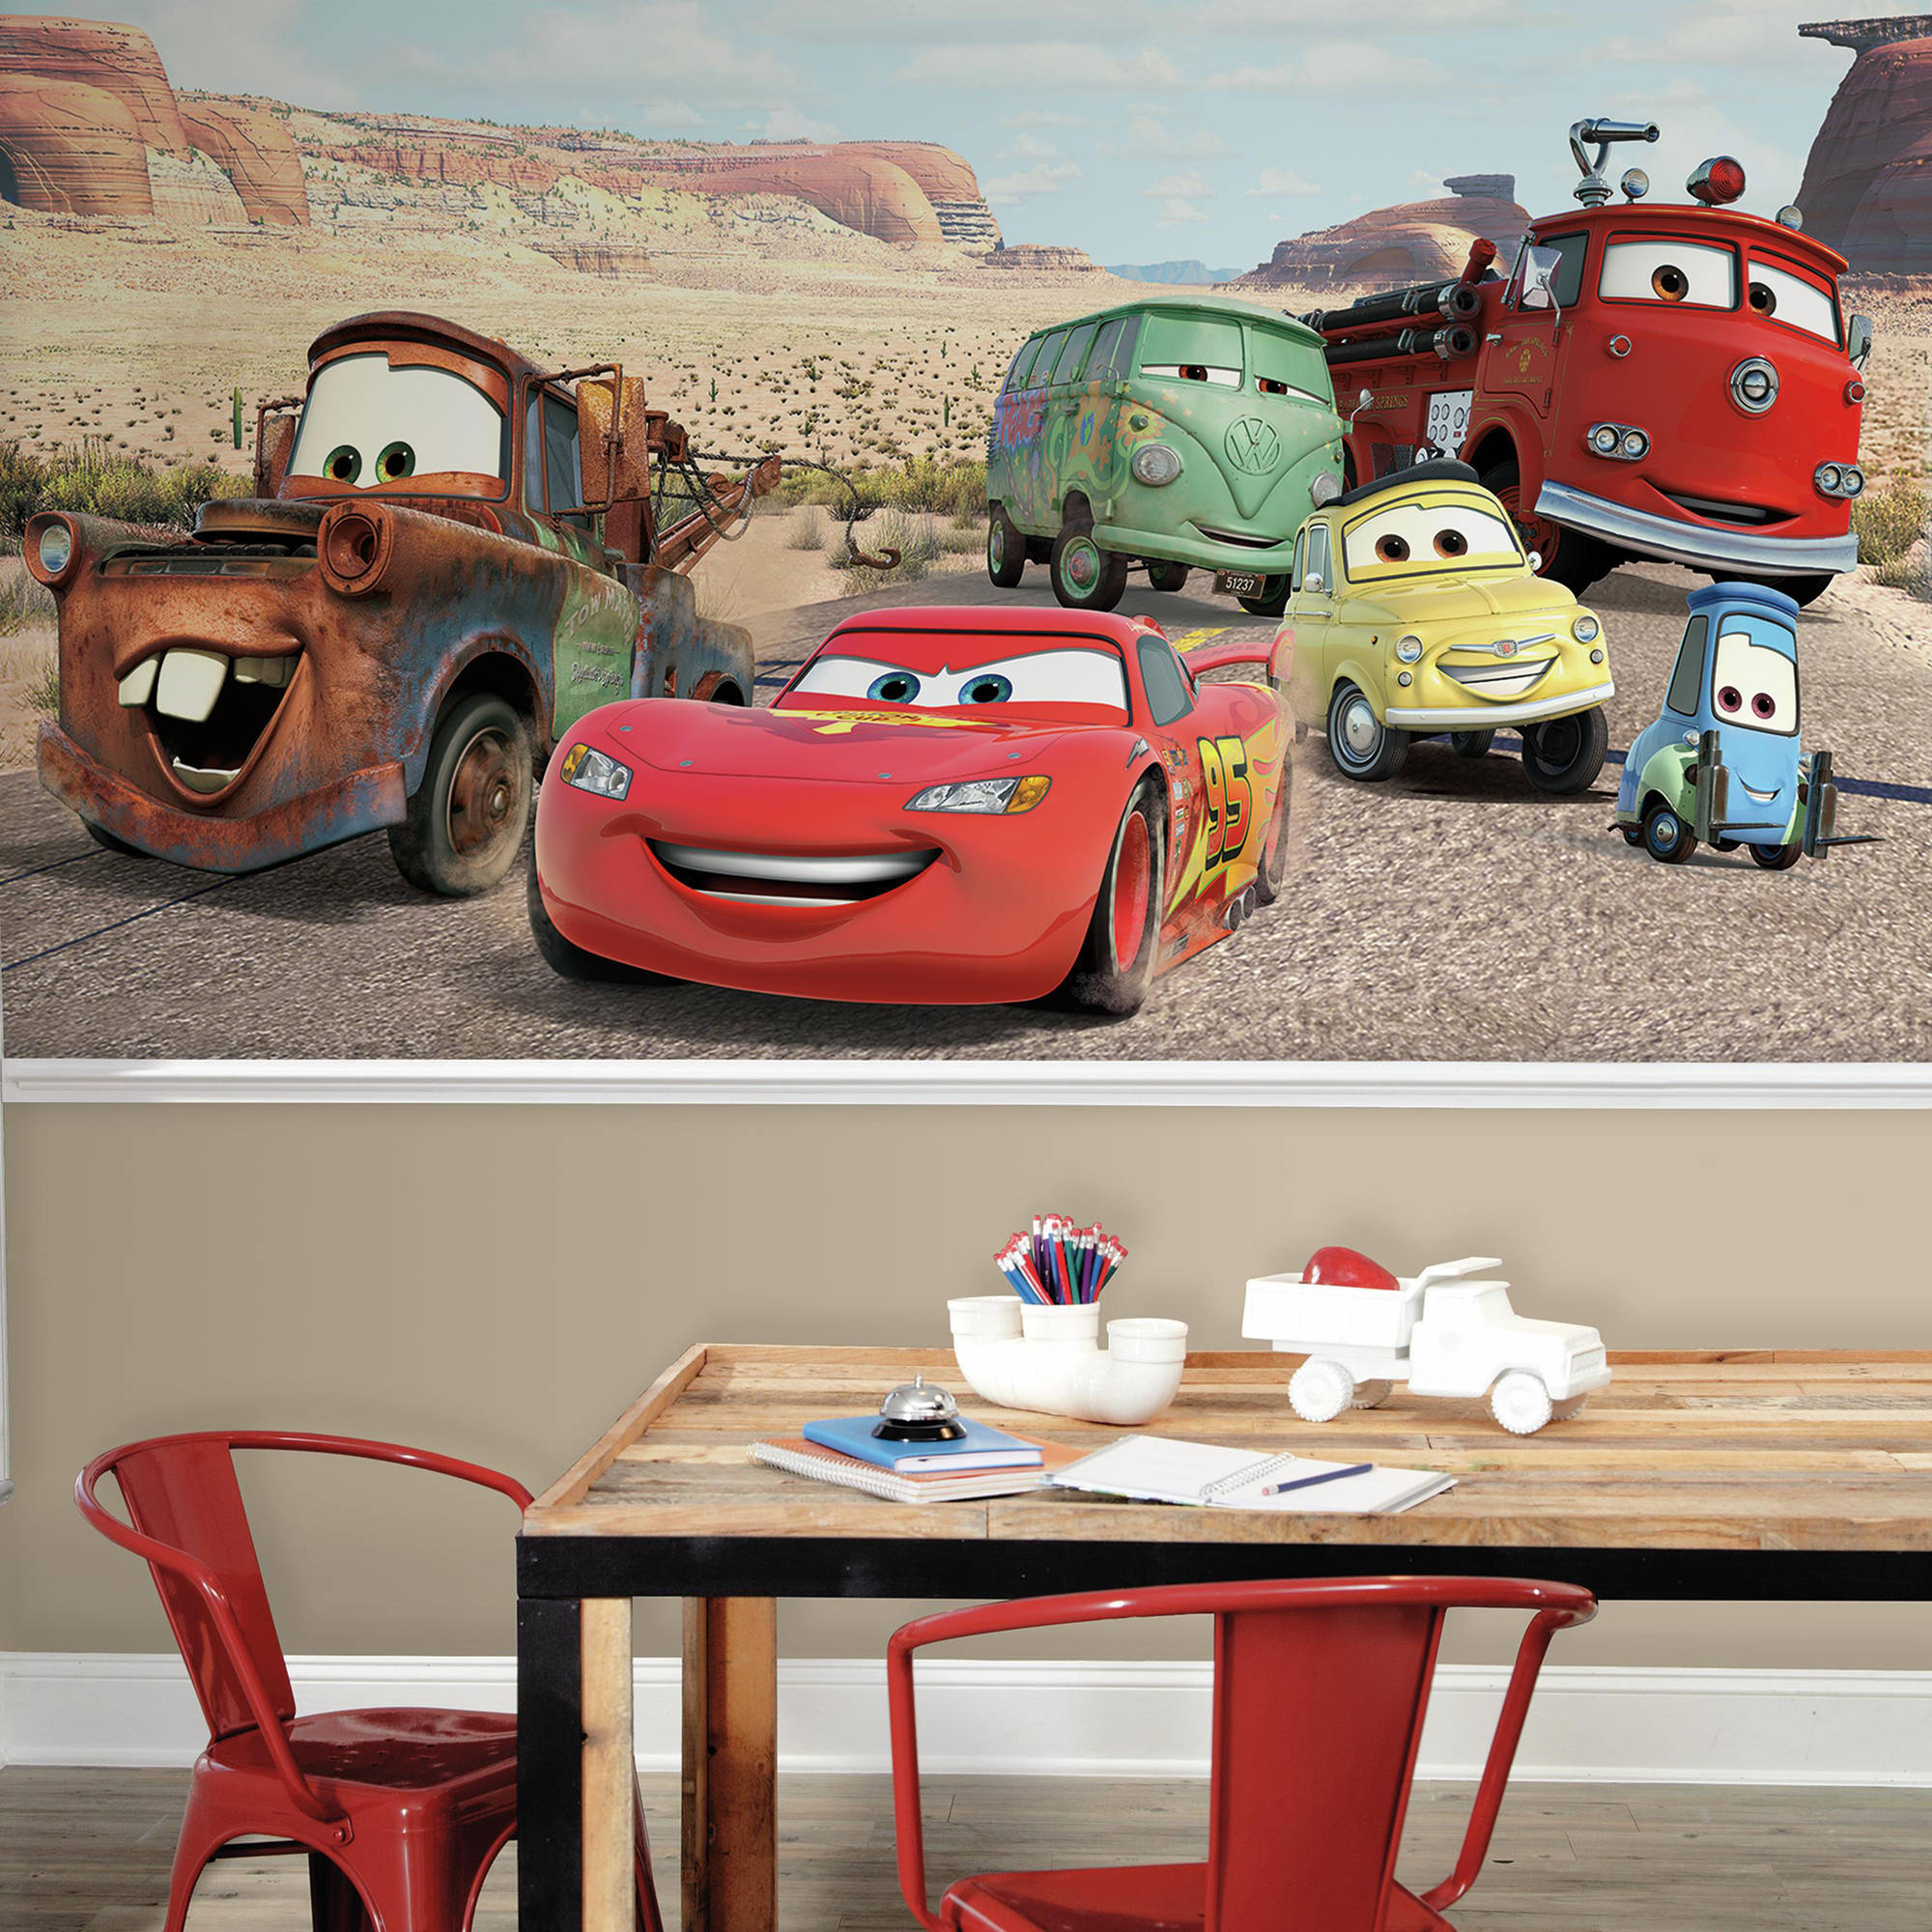 RoomMates Decor Disney Cars Desert XL Chair Rail Prepasted Mural, 6' x 10.5', Ultra-Strippable